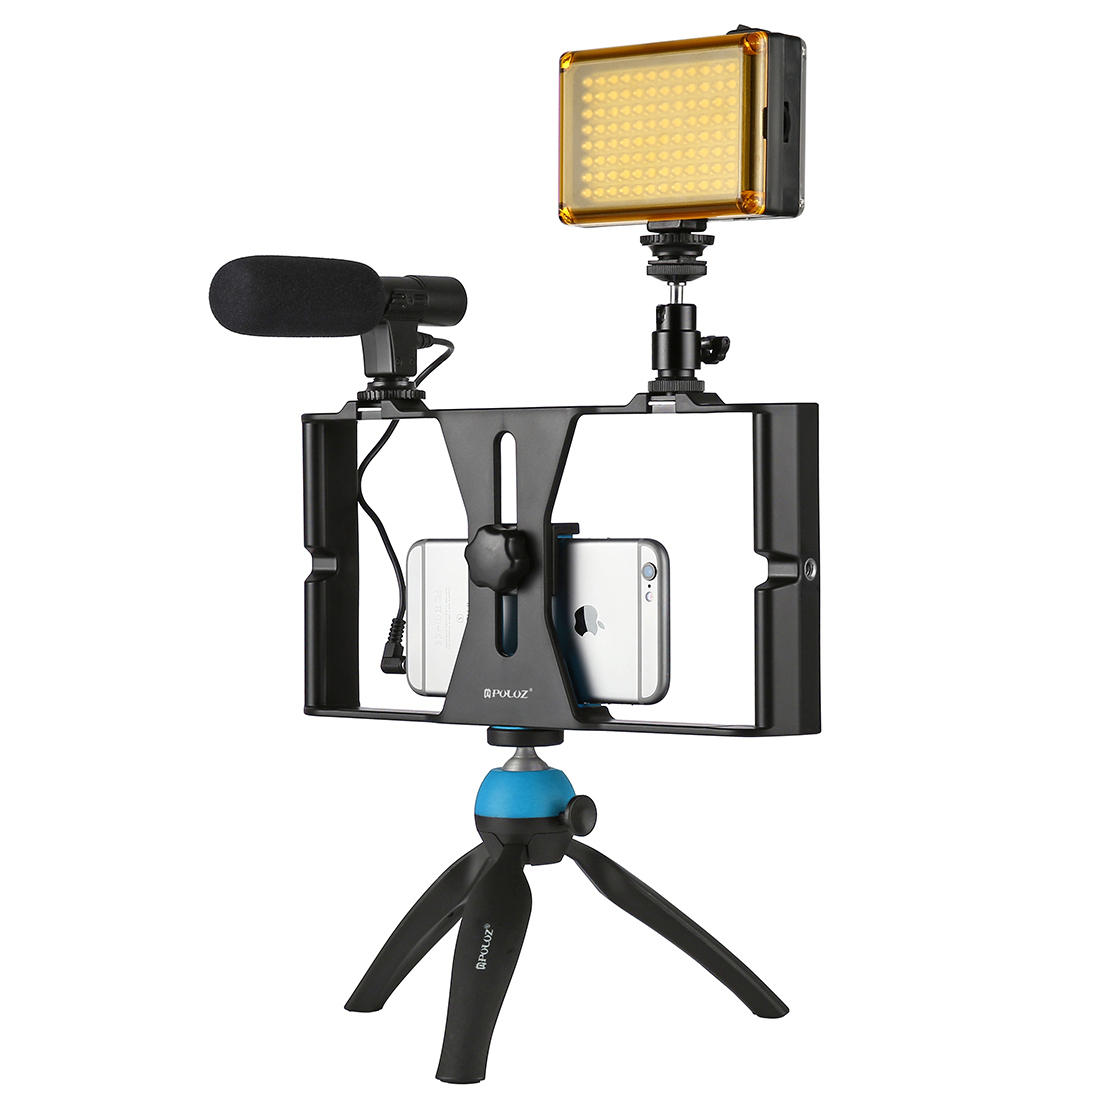 PULUZ PKT3023 Smartphone Video Rig LED Studio Licht Video Shotgun Mikrofon Mini Tripod Mount Kits mit Cold Shoe Stativkopf für iPhone Galaxy Huawei Xiaomi für HTC für LG für Google Smartphones